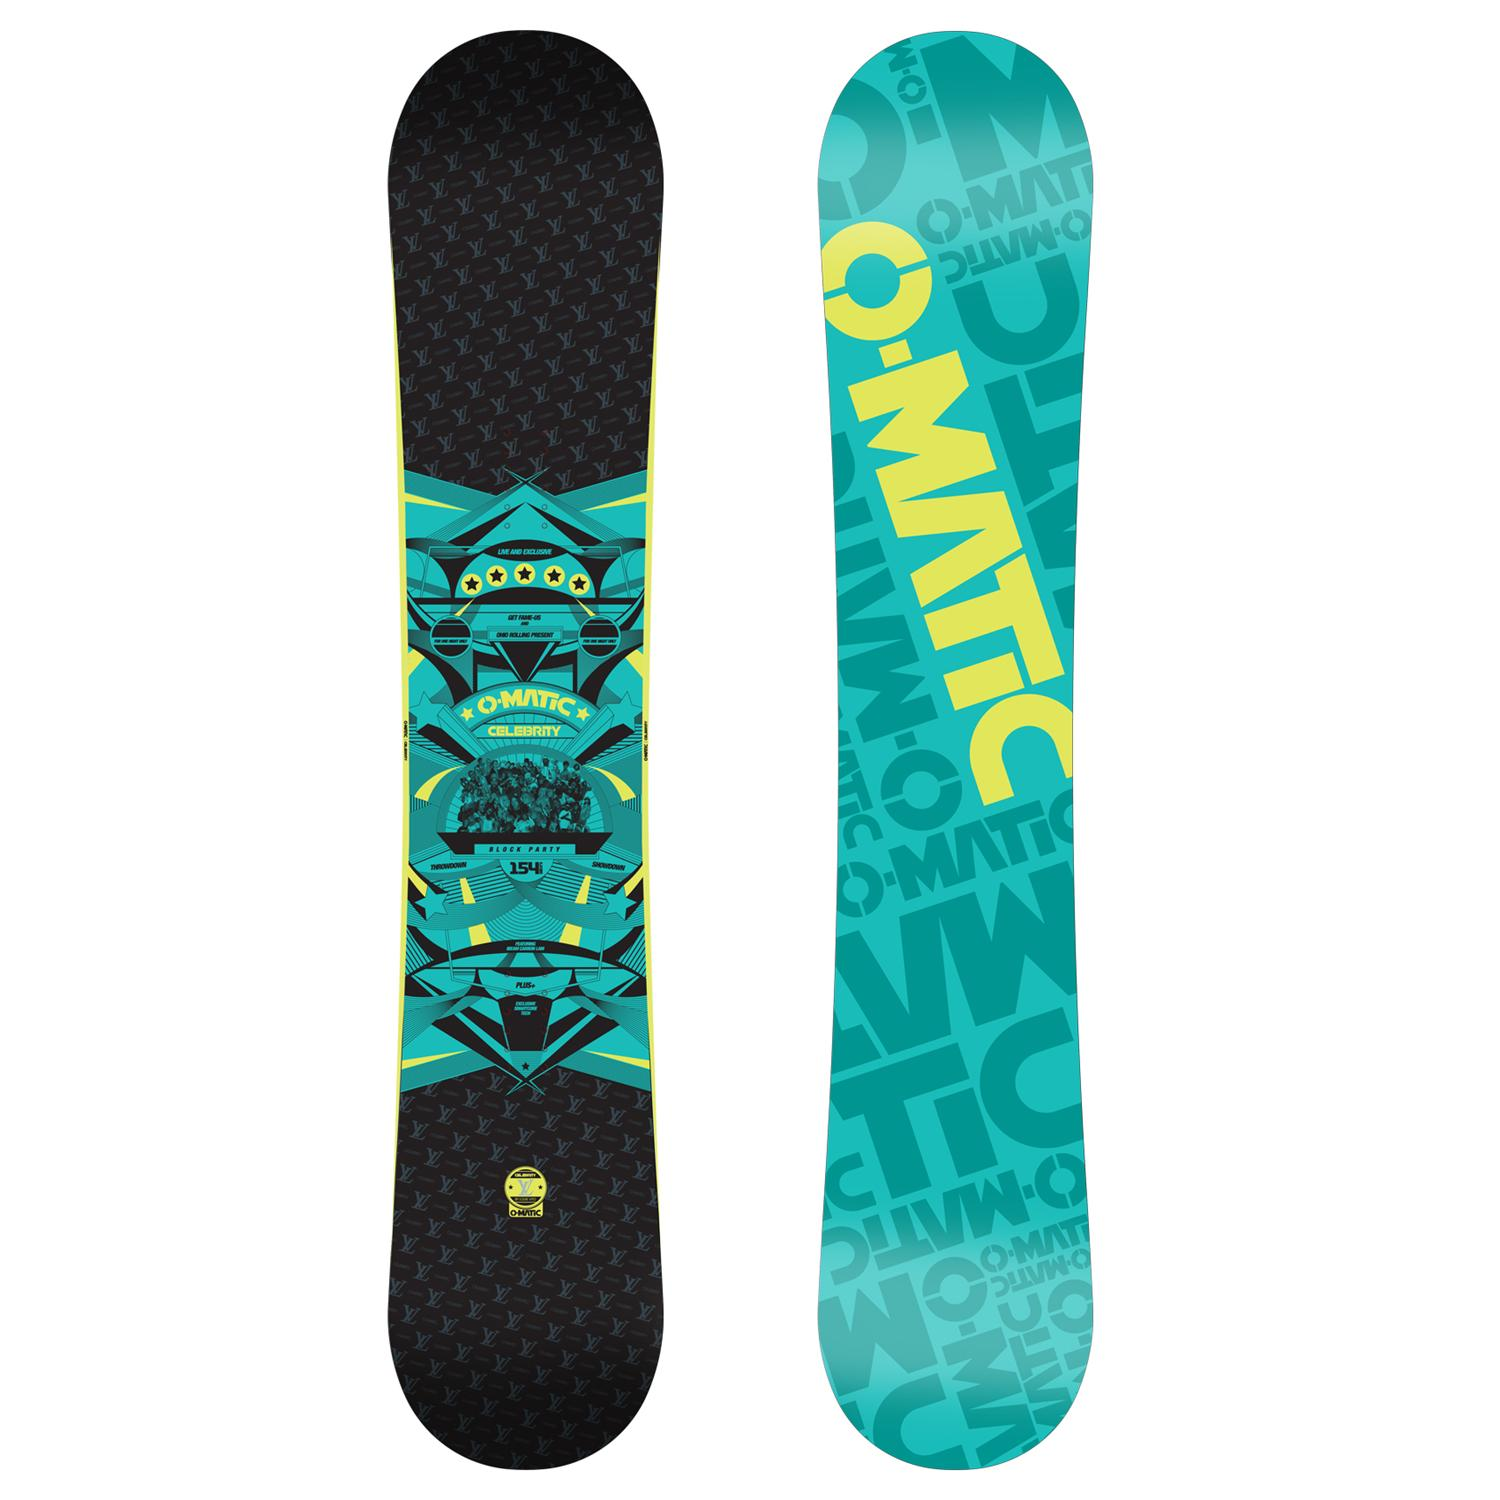 Omatic Celebrity Snowboard 2010/11 Review - Whitelin...